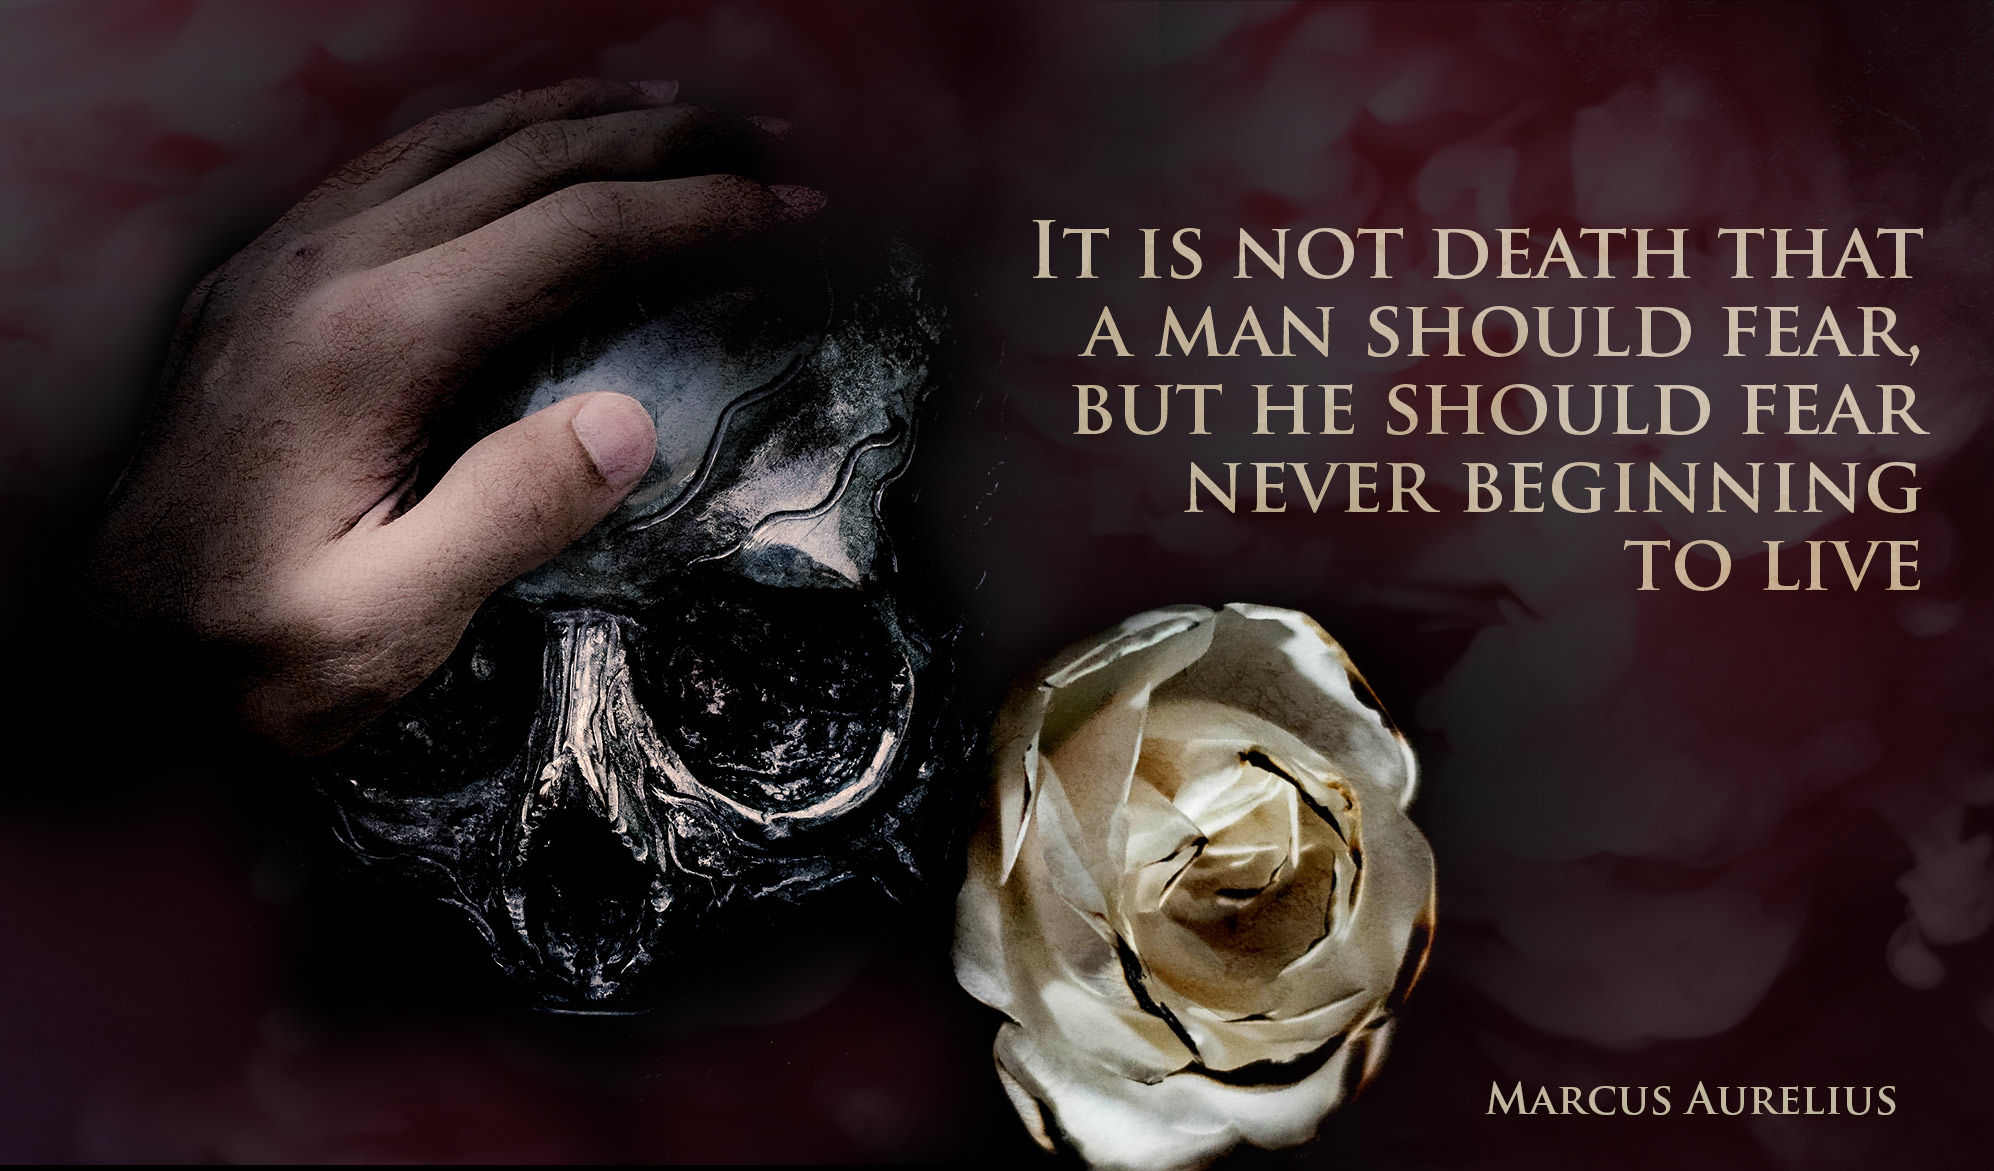 daily inspirational quote image: a hand resting on a skull with a wither rose nearby